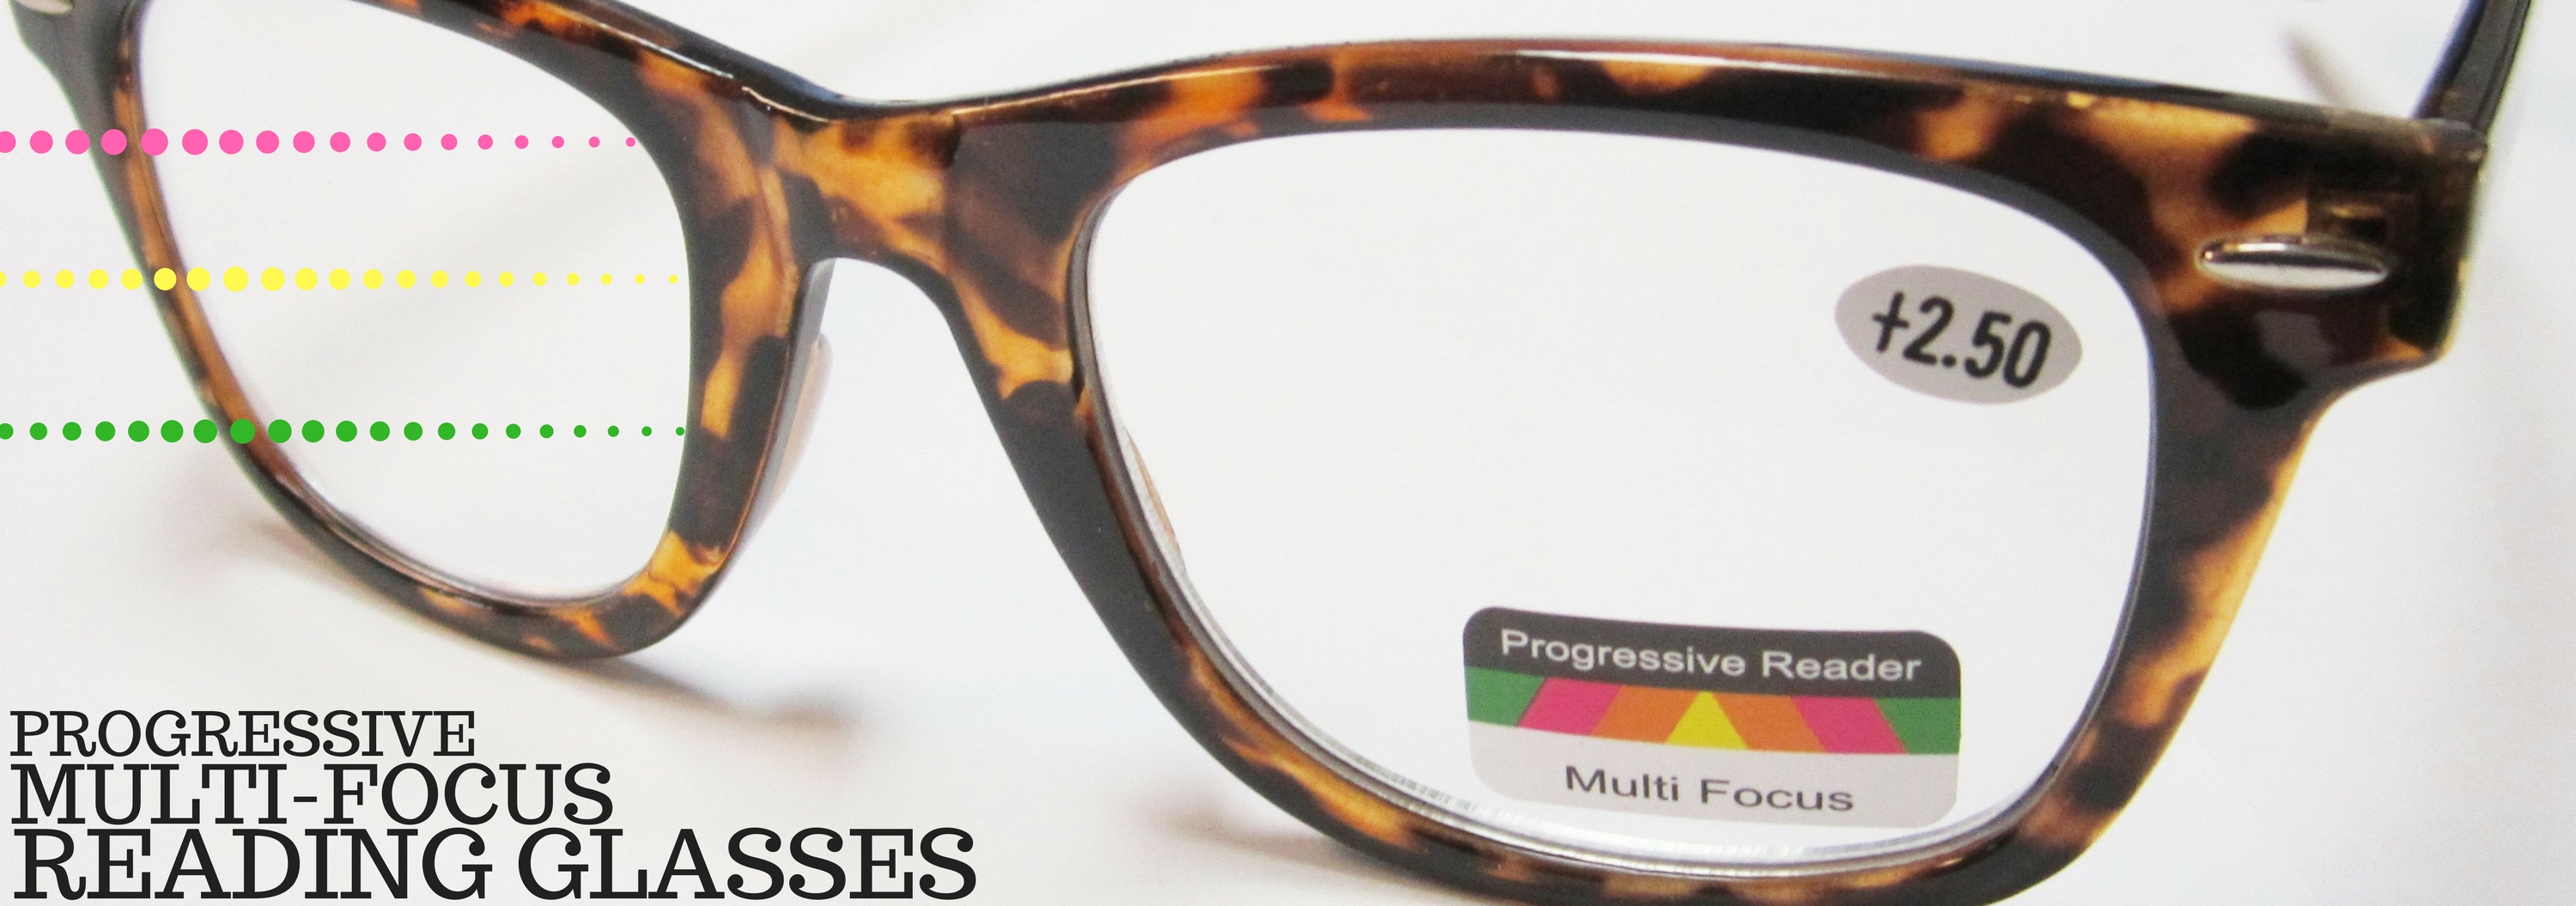 Progressive reading glasses